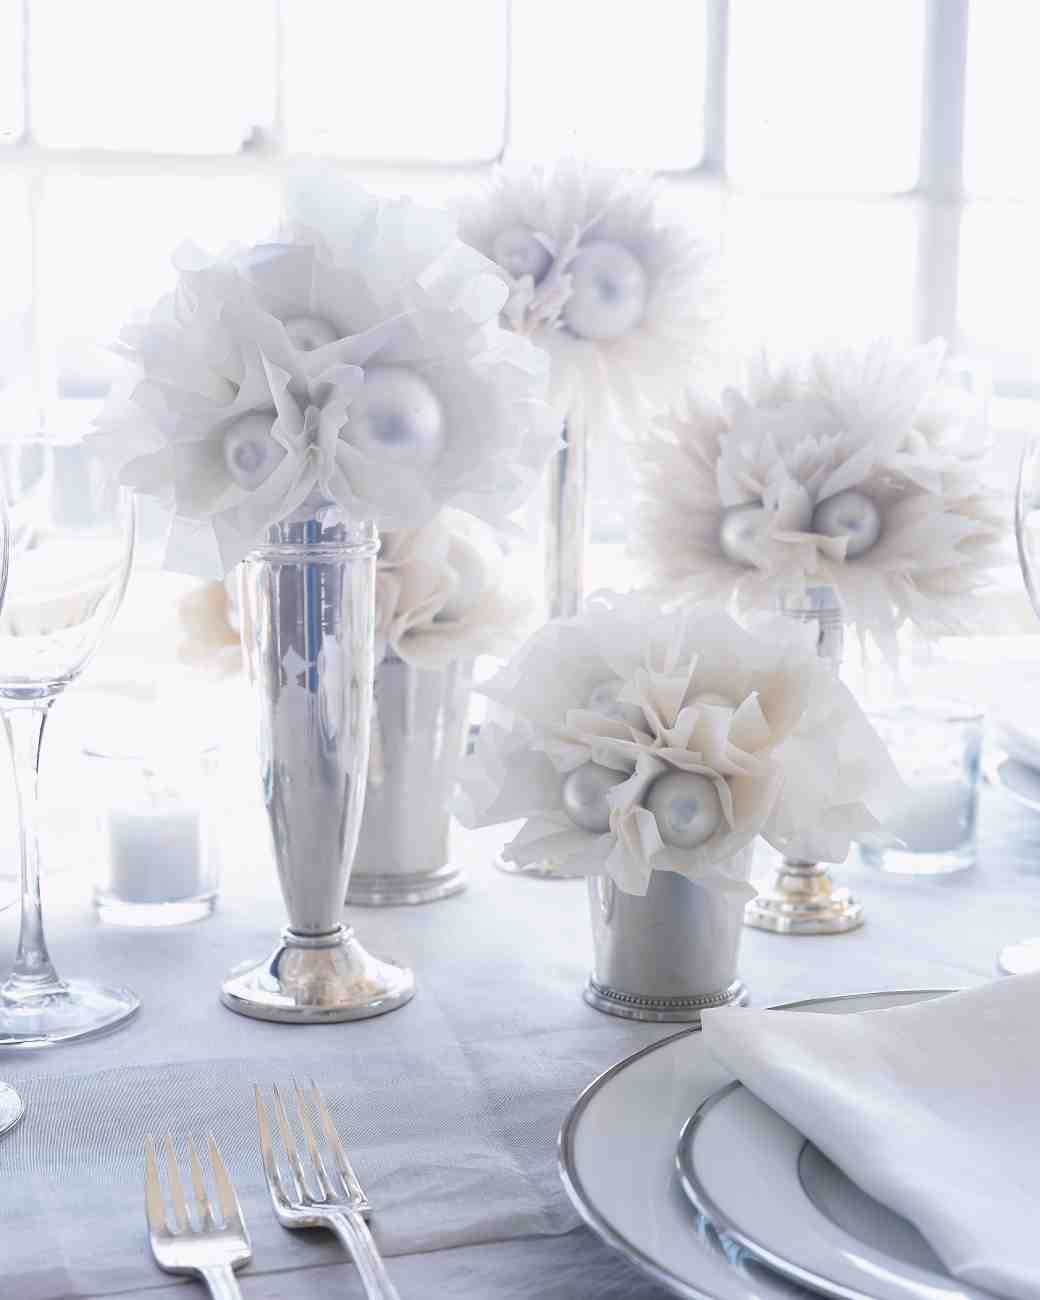 DIY Wedding Decorations For Every Budget | Diy wedding decorations ...